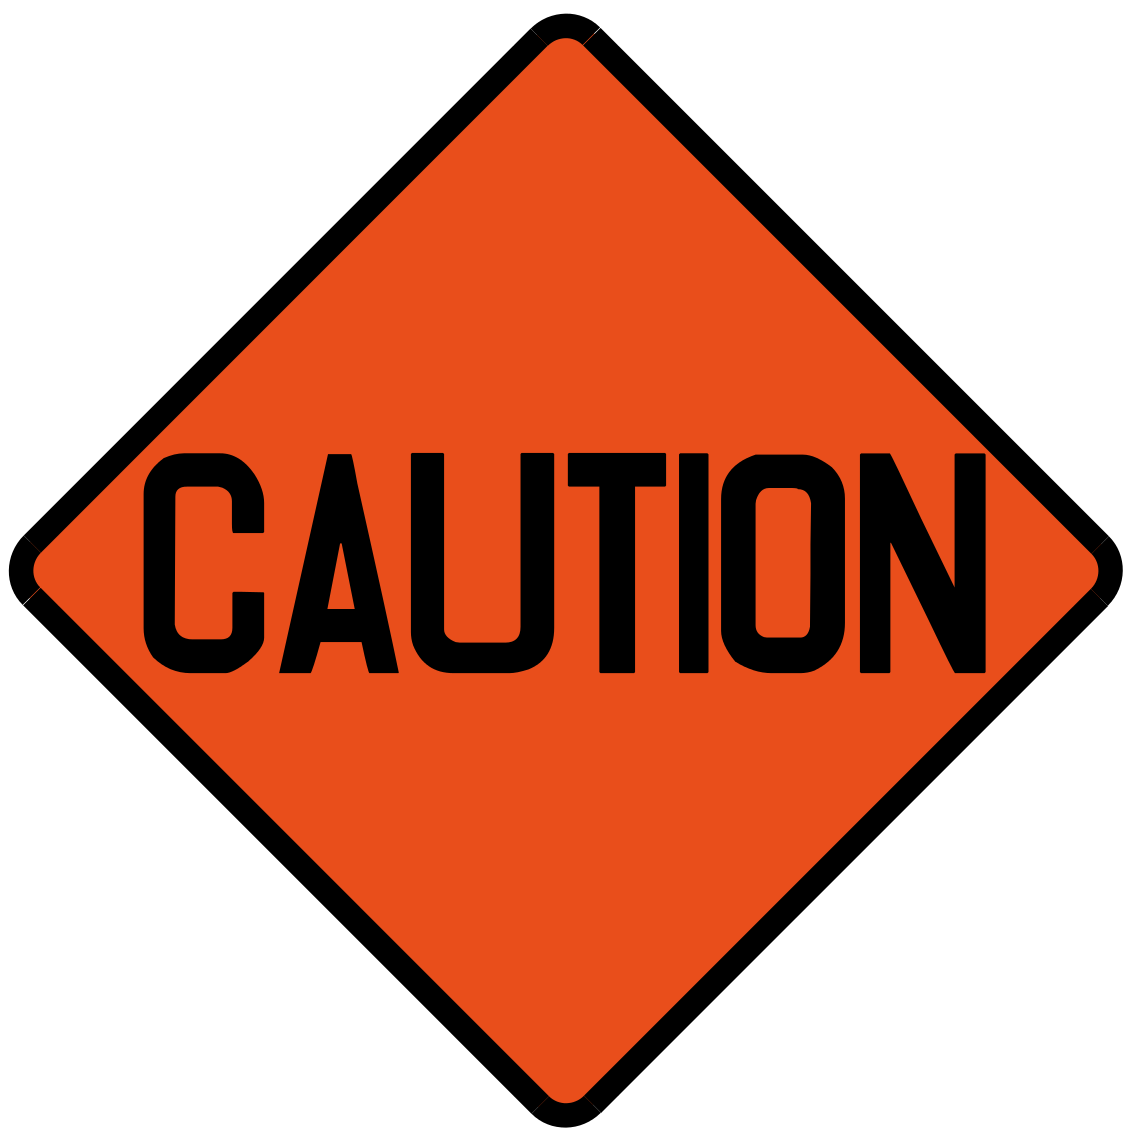 Indication of road stretch affected by road works